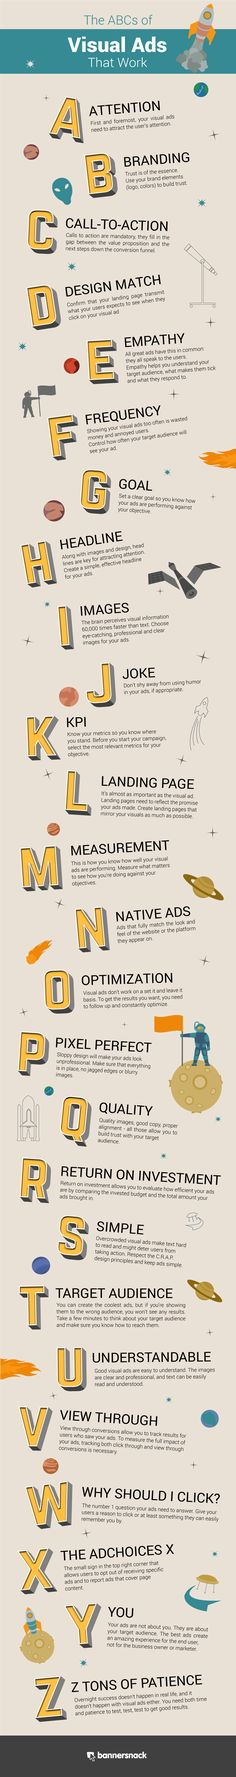 Great infographic  using the ABCs to describe traits to consider for your Visual marketing.  Click on pin and read moreThe ABCs of Visual Ads That Work [Infographic] | Social Media Today